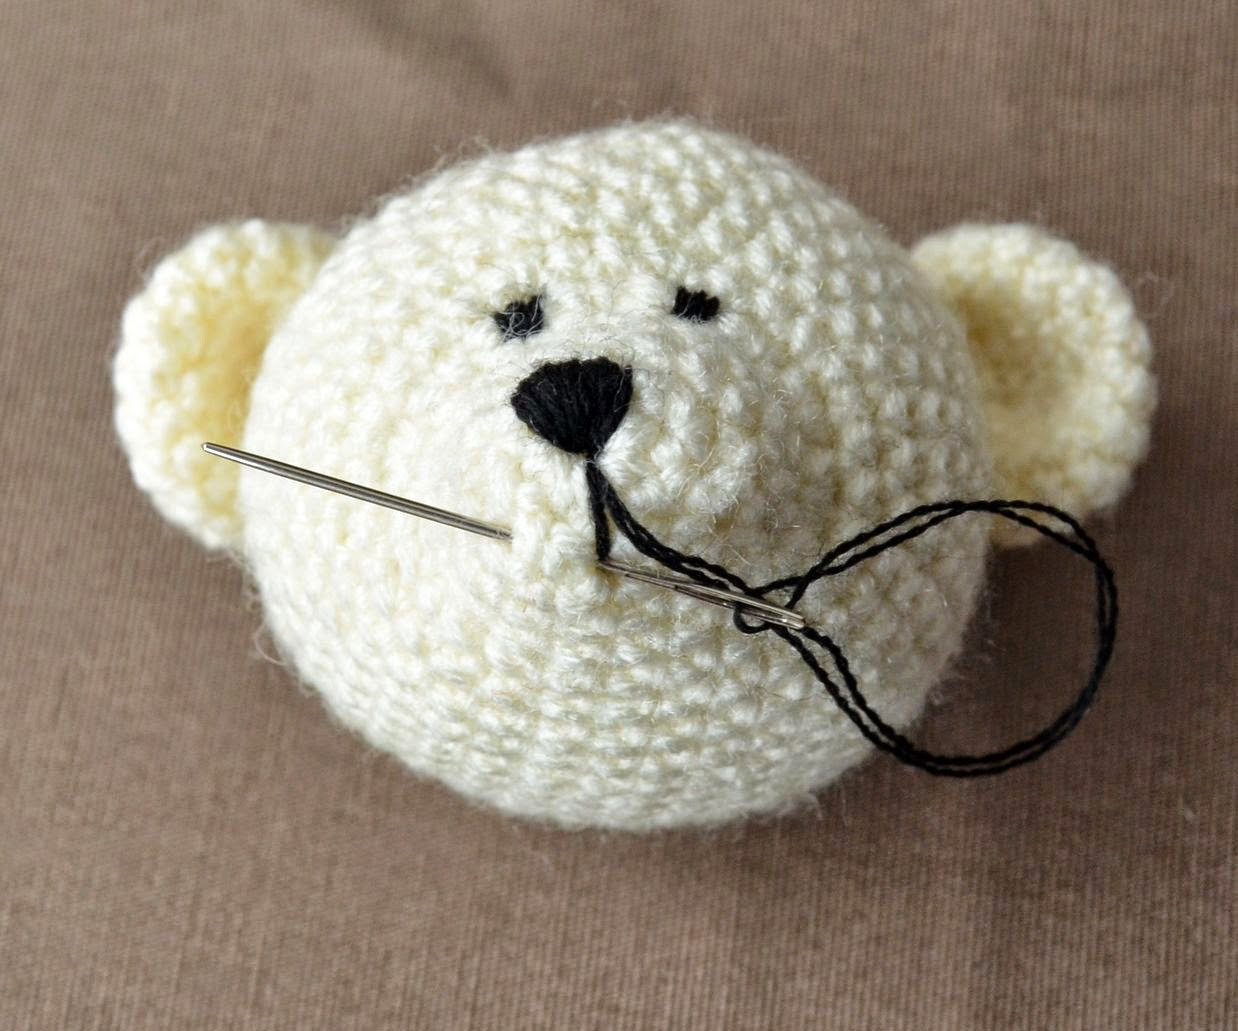 Then Follow The Pictures To Embroider Bear's Mouth With Short Stitches